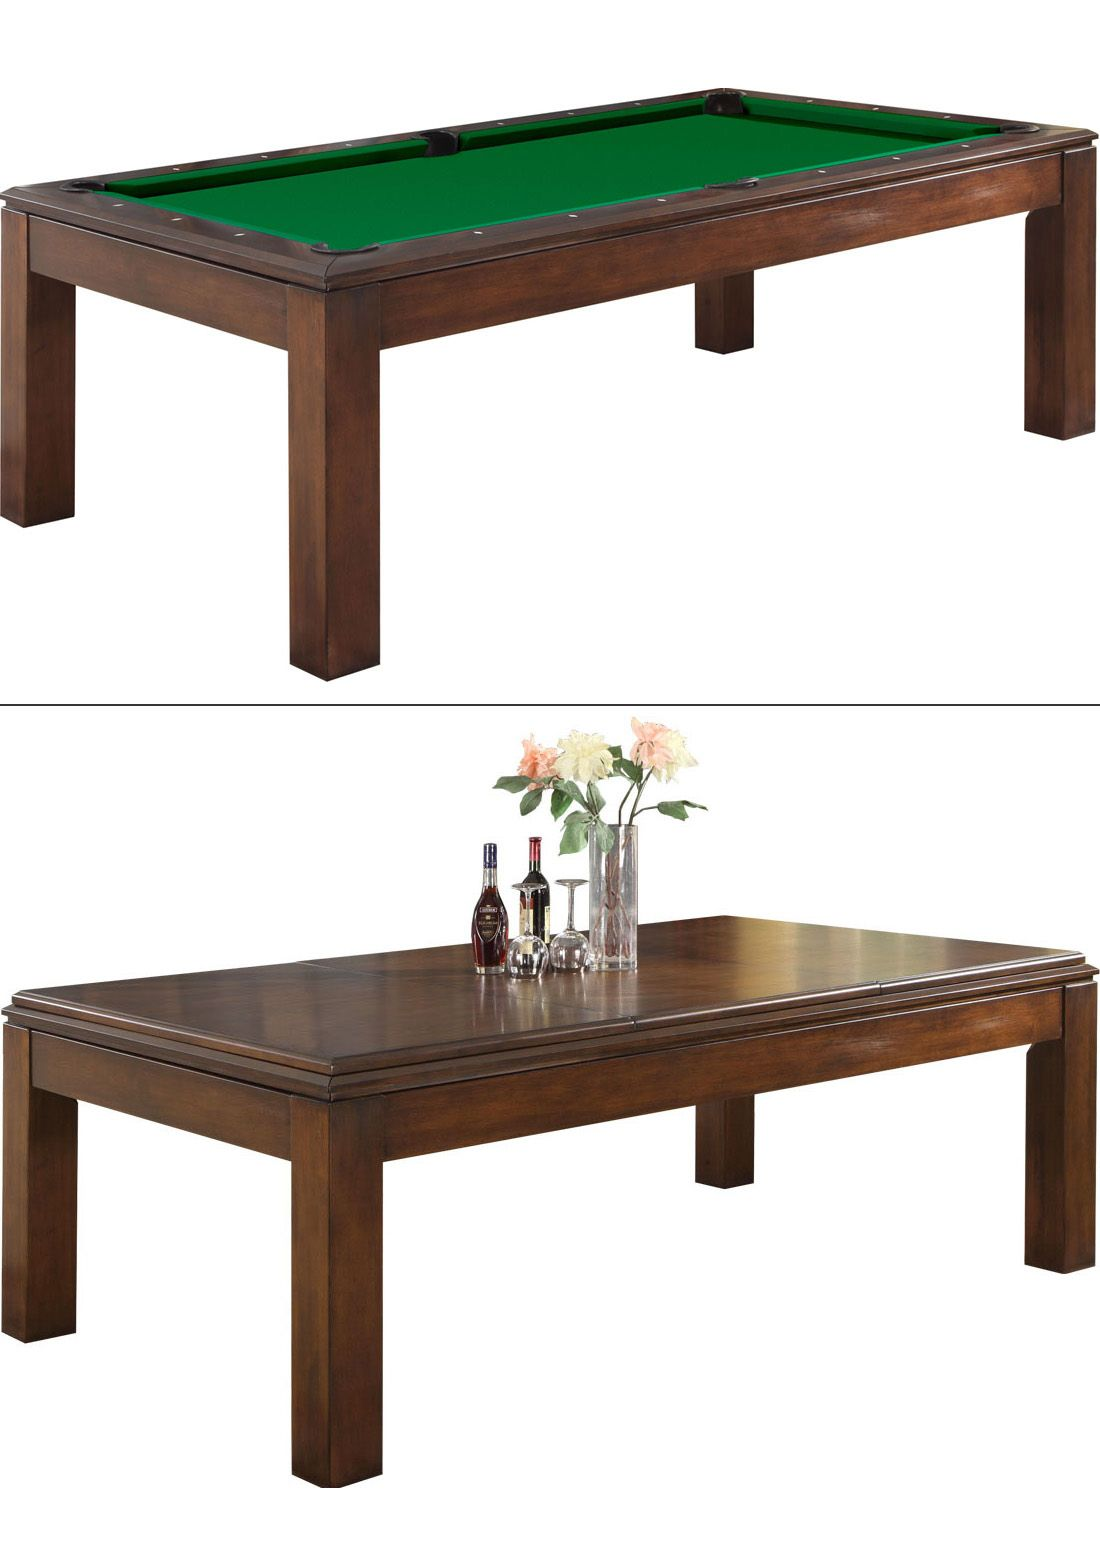 Dining Room Table Turns Into A Full Size Pool Table Great Way To Save Space And Still Have Fun Pool Table Dining Table Billiard Pool Table Pool Table